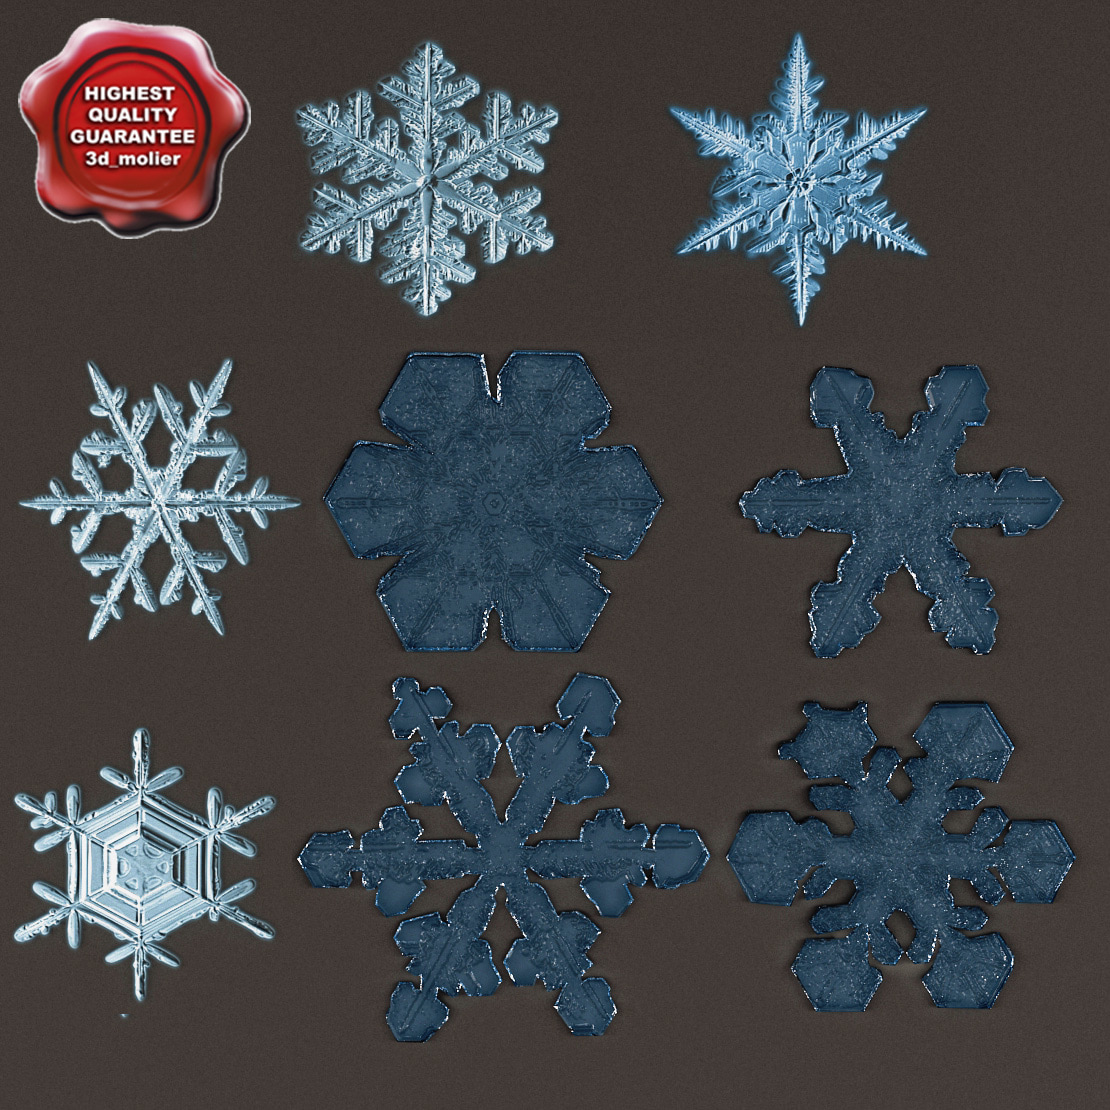 Snowflakes_Collection_V3_00.jpg